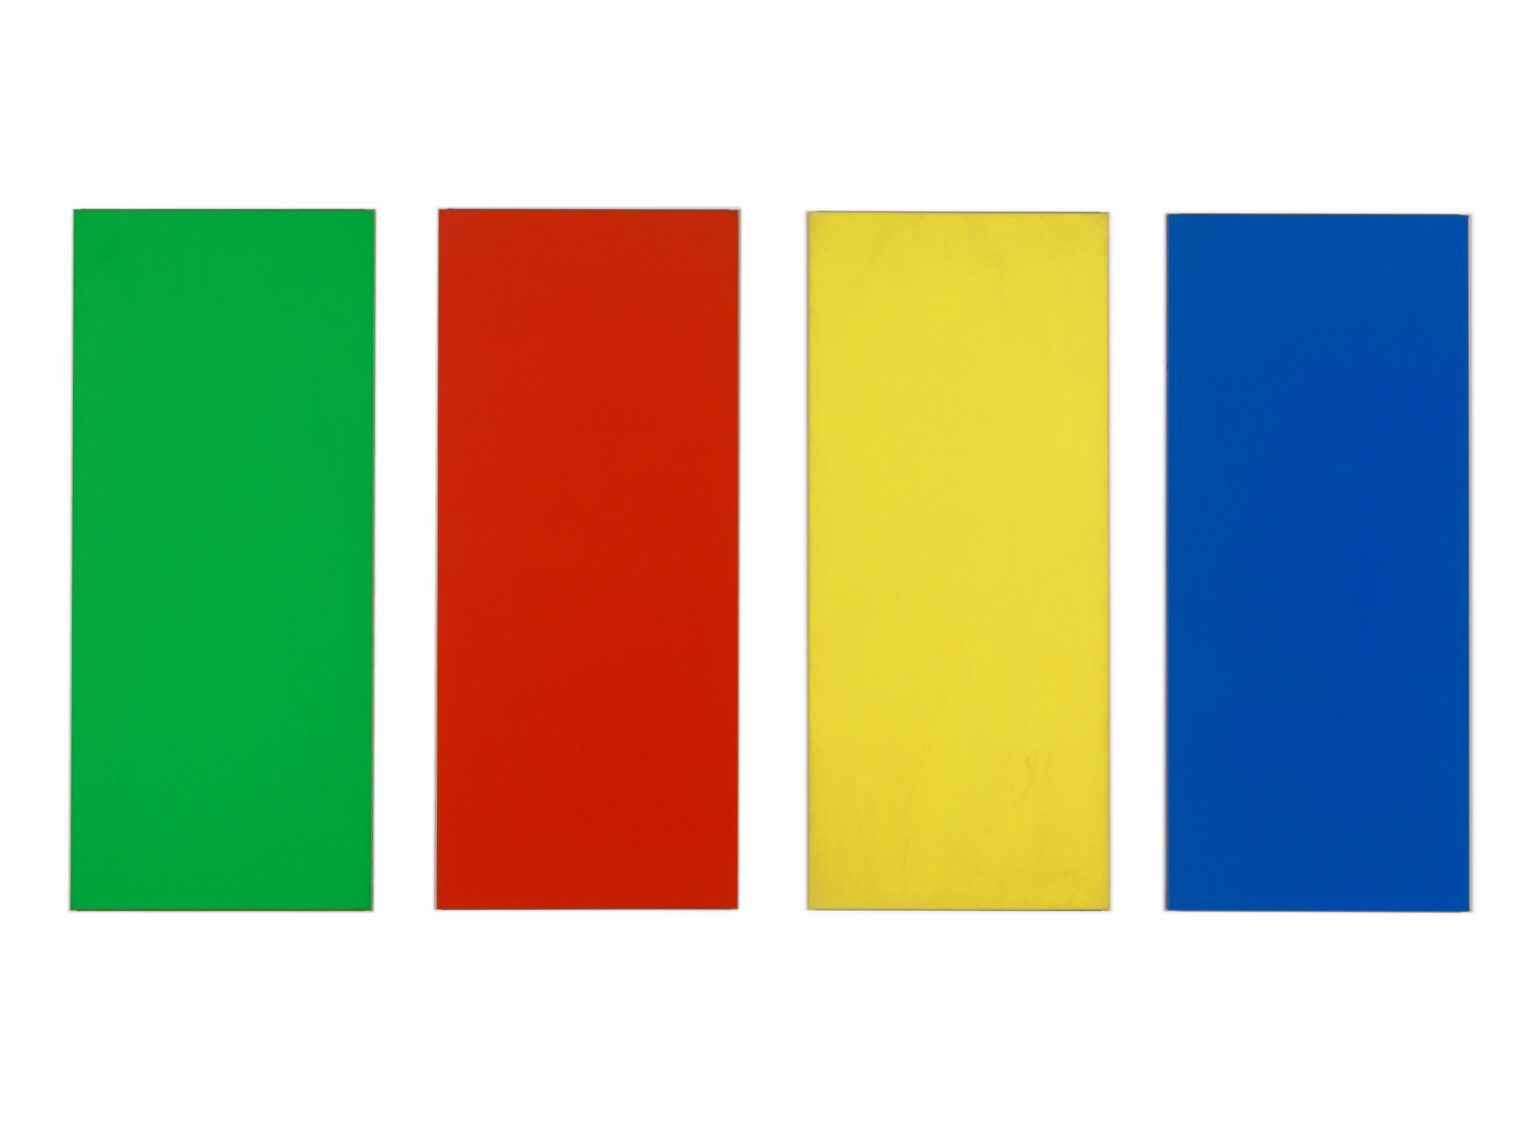 Ellsworth Kelly. Green Red Yellow Blue. 1966. The Baltimore Museum of Art: In Honor of Nathan L. and Suzanne F. Cohen, Baltimore, BMA 2019.84. © Ellsworth Kelly Foundation, Courtesy Matthew Marks Gallery